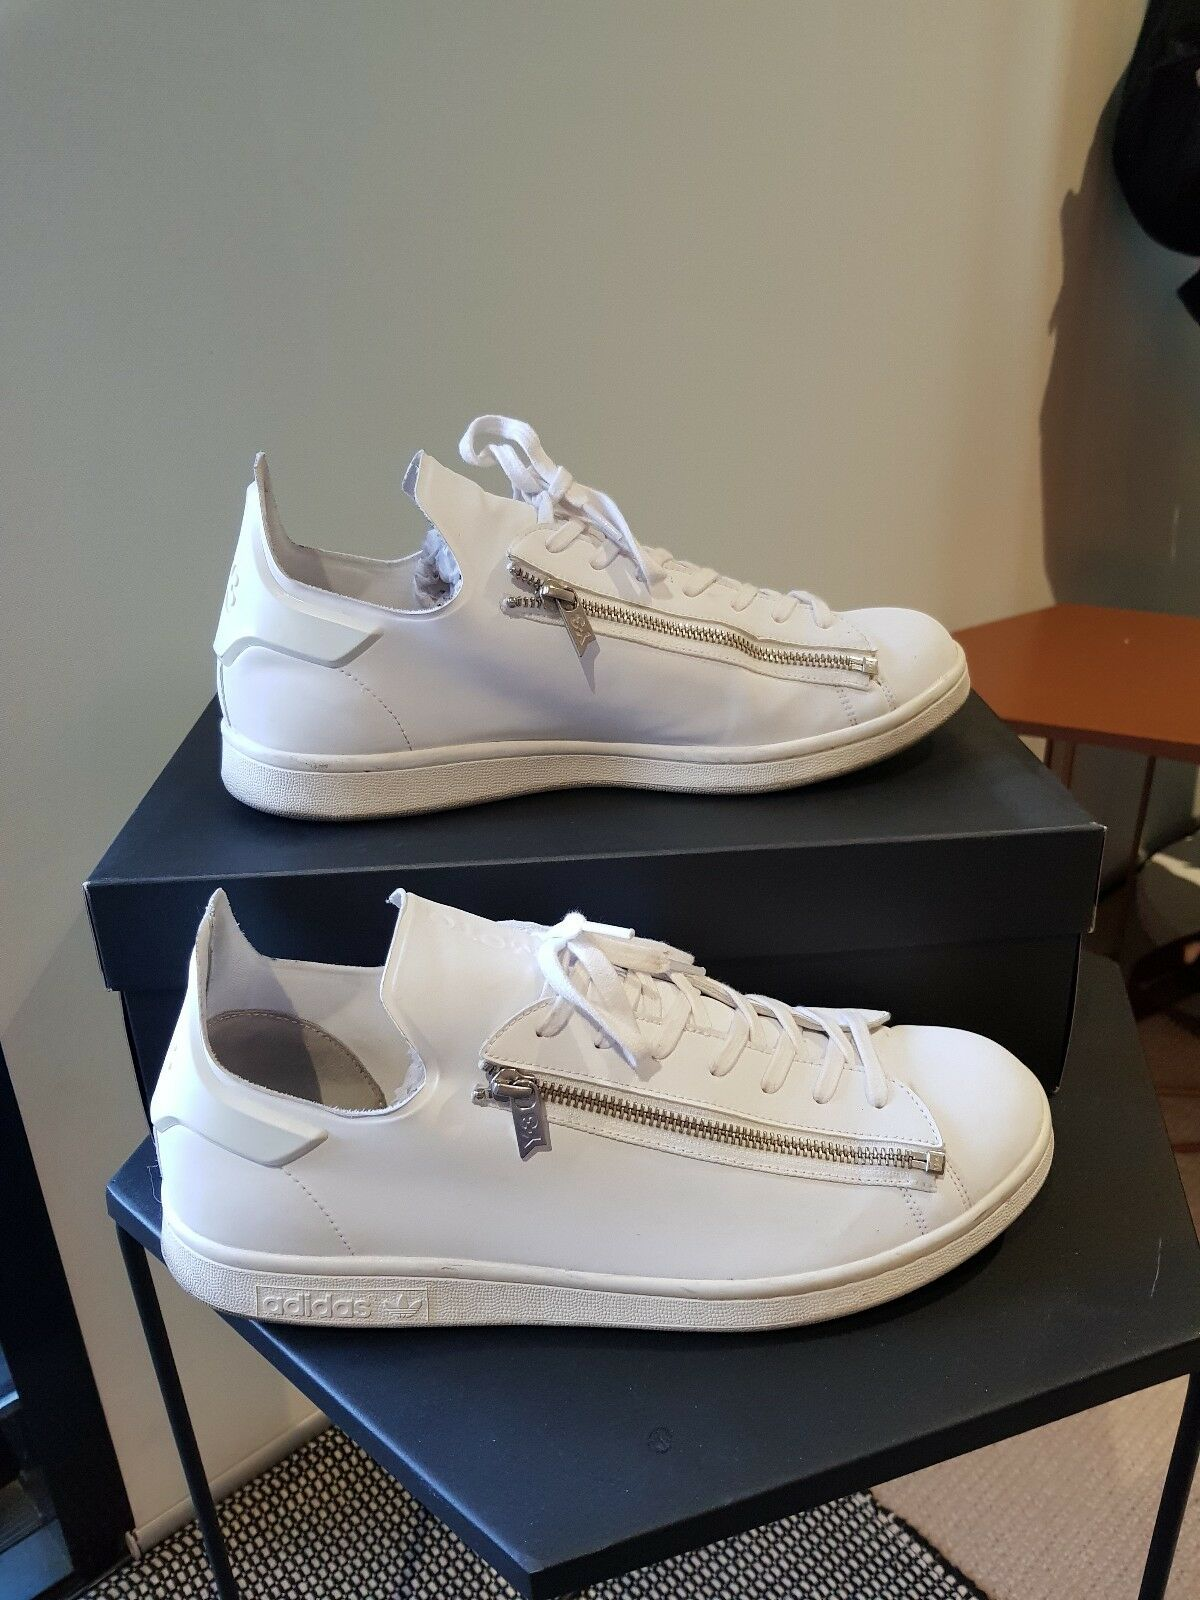 Adidas Y-3 Stan Smith Zip, Triple White, 11.5US, Good Used Condition